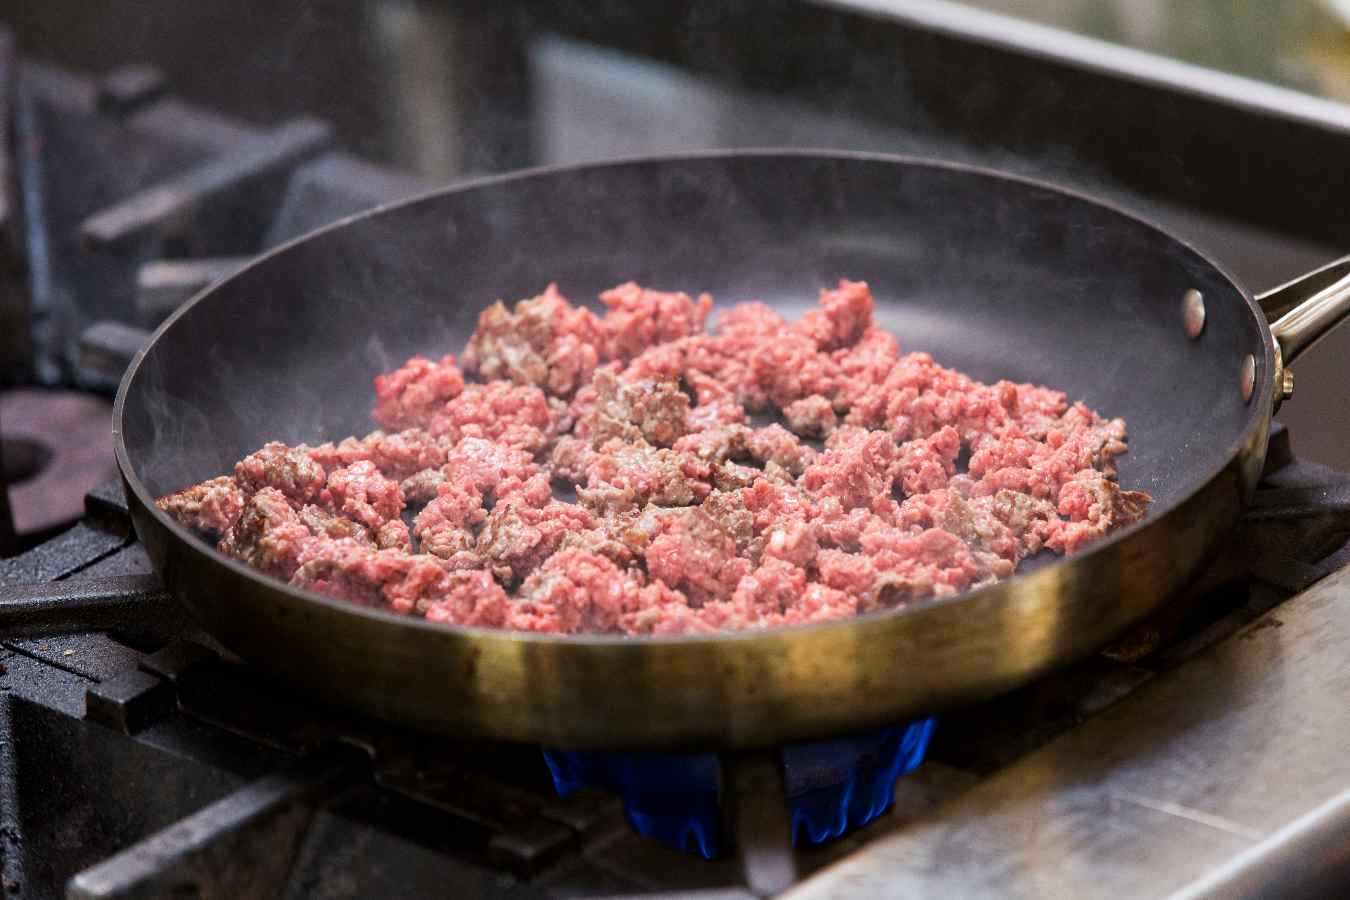 Sauteed Impossible™ Burger in a hot cooking pan in a restaurant.